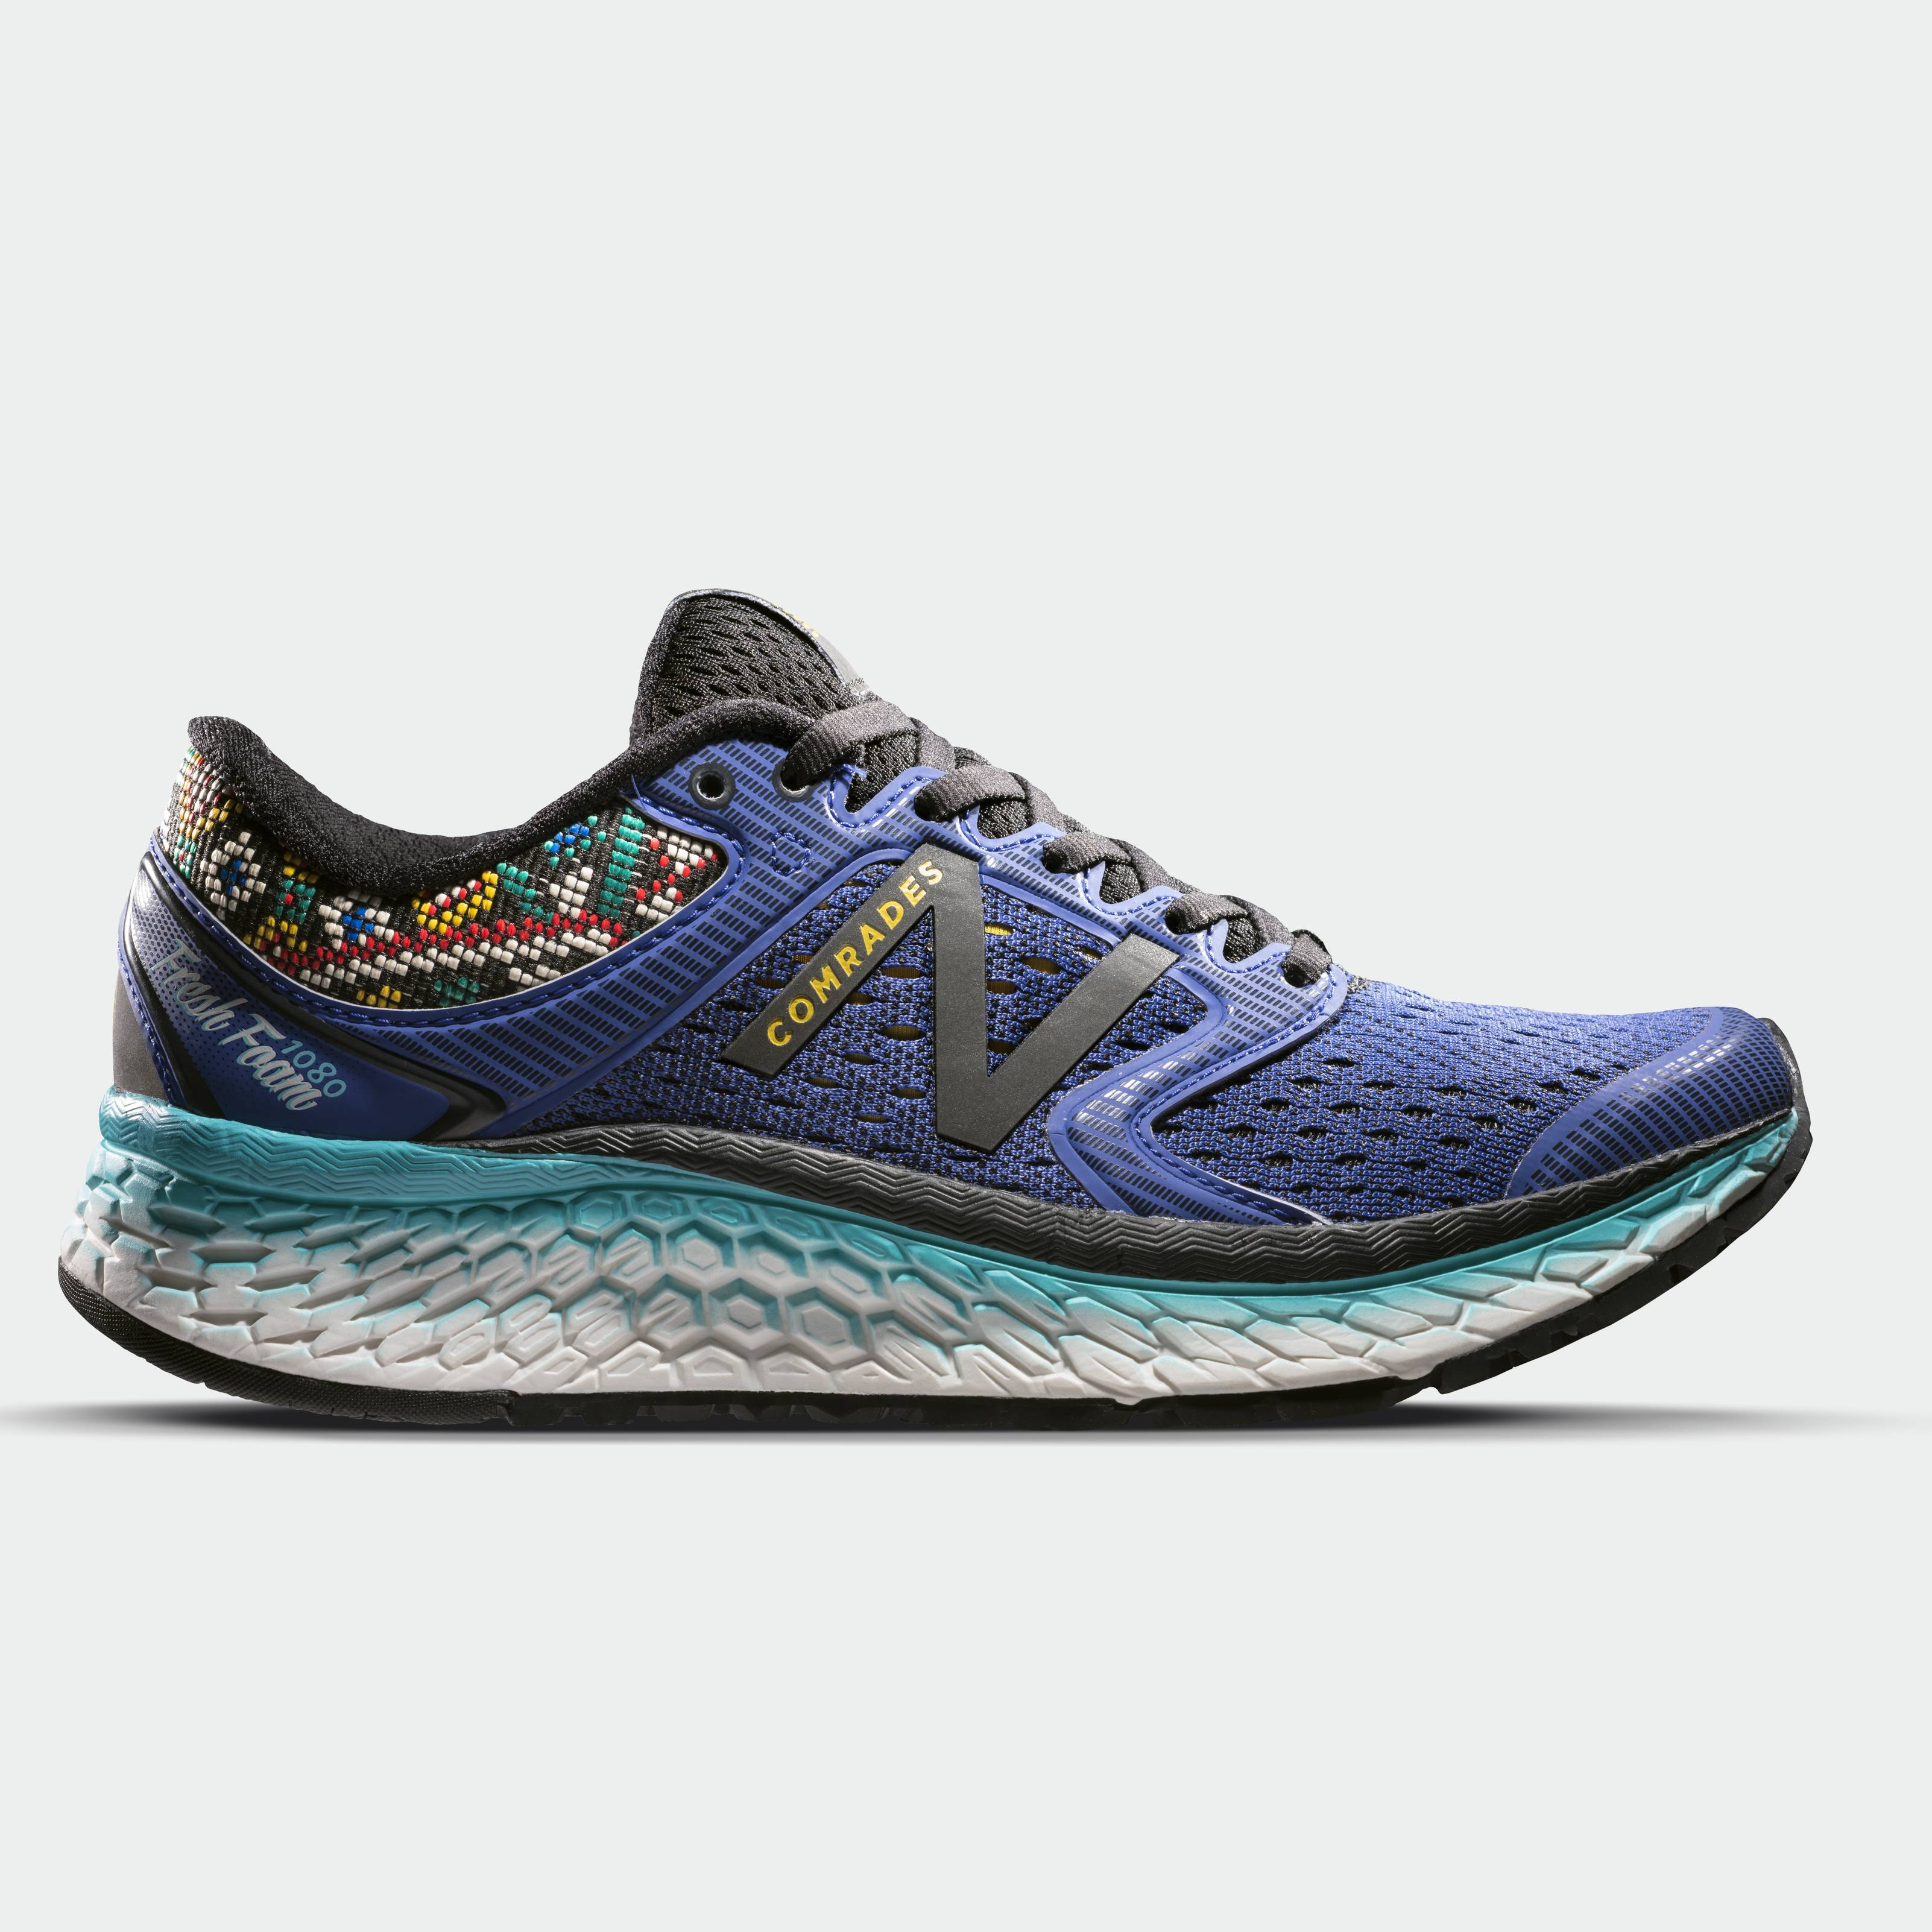 new balance shoes explained variance pca skin